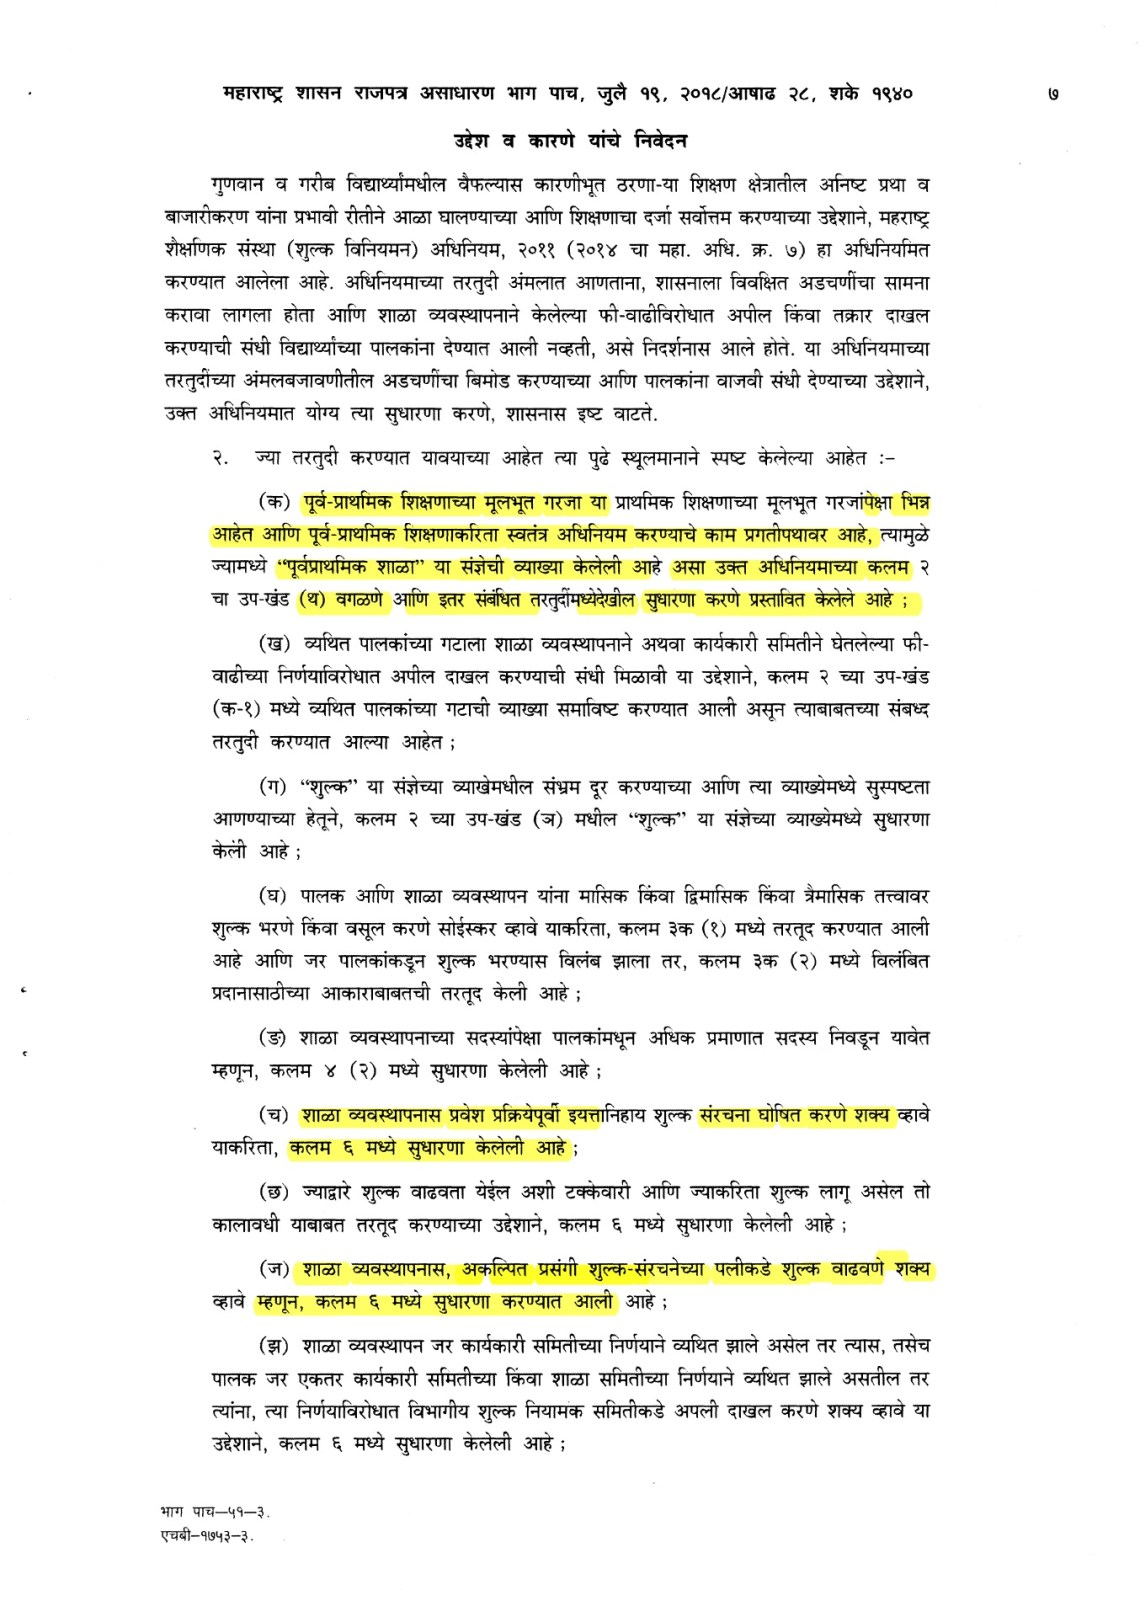 Maharashtra Educational Institutions Regulation of Fee Act 2011 Amendment Bill of 2018 Preamble Page 1